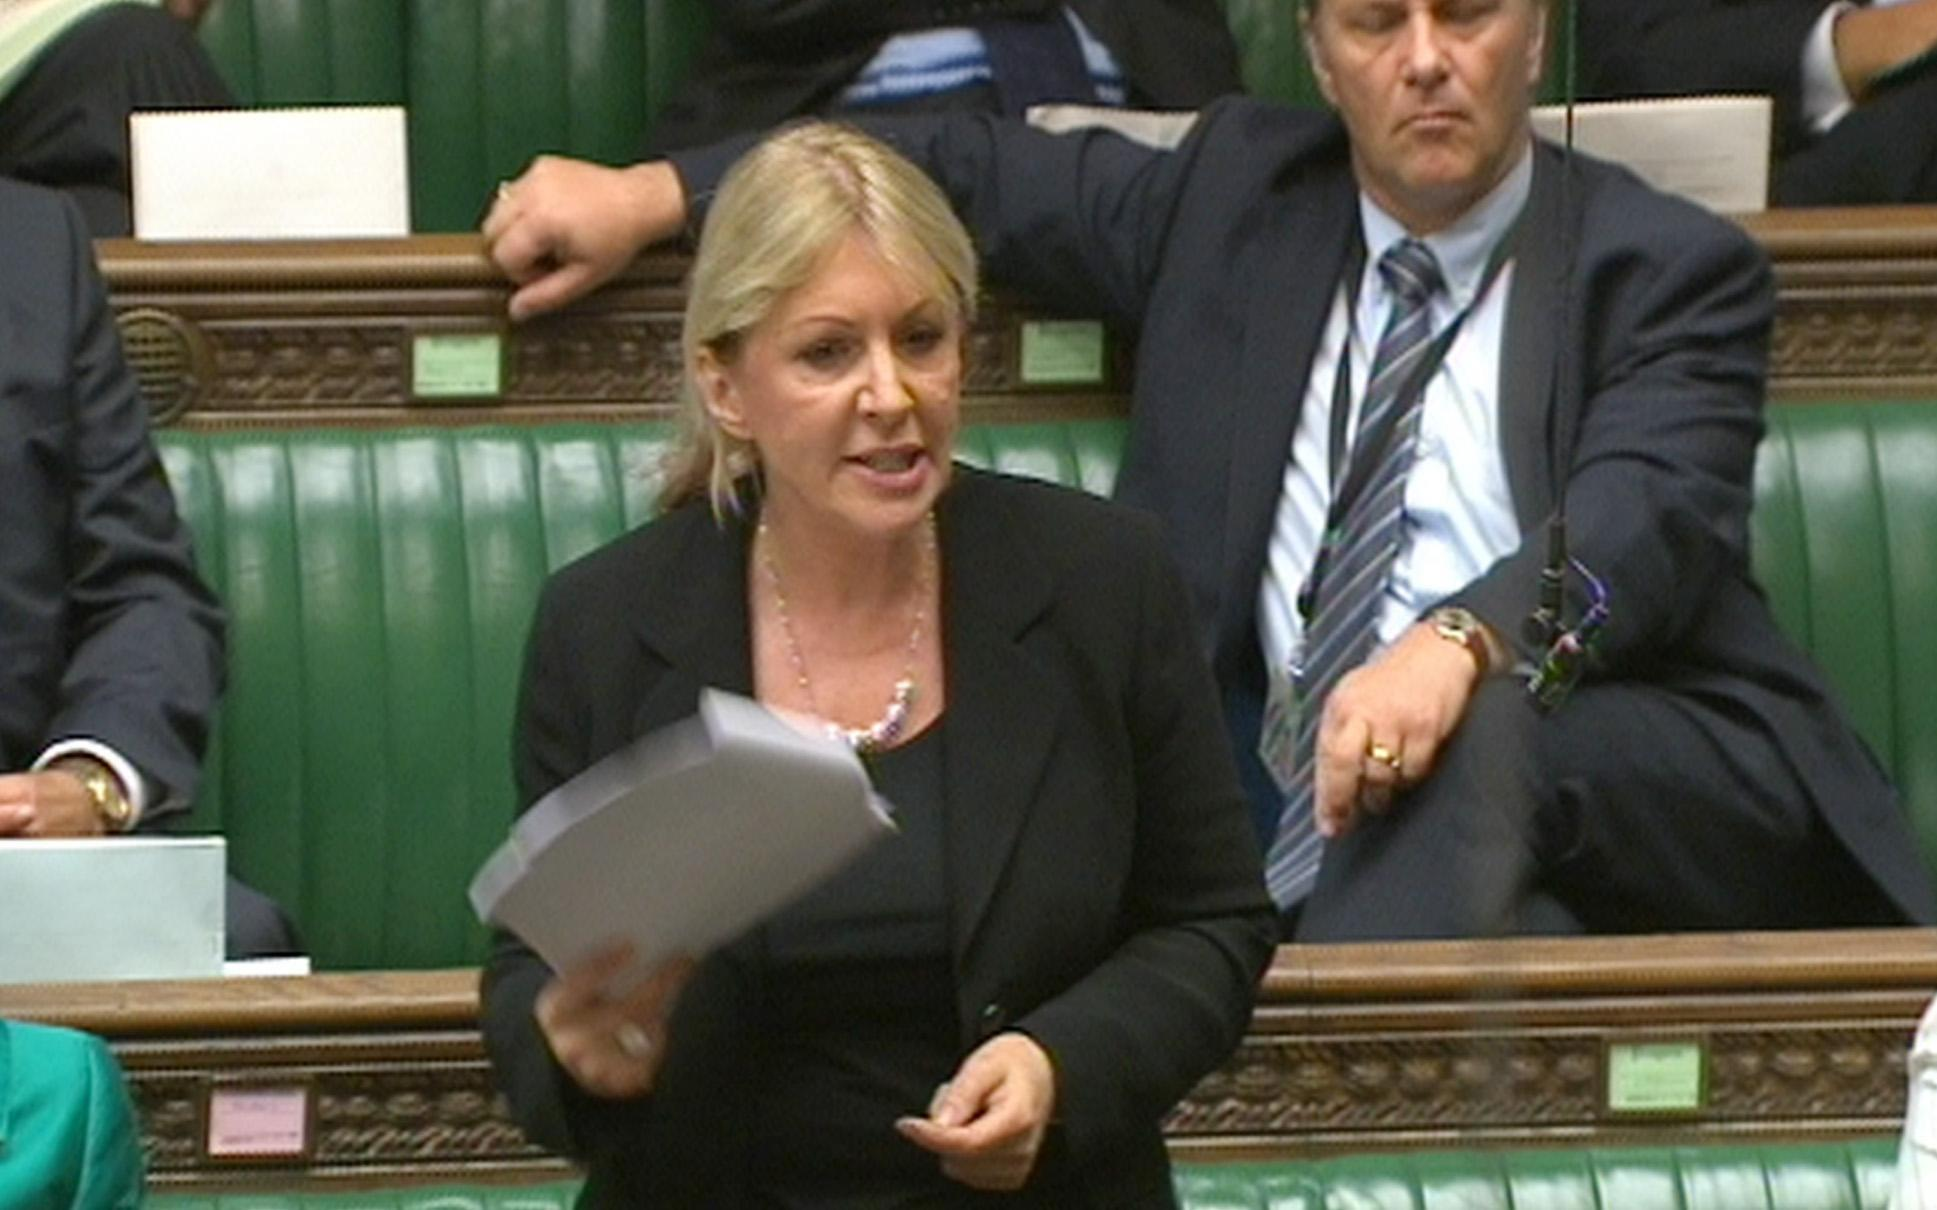 Conservative backbencher Nadine Dorries speaks in the House of Commons, London, during a debate over plans to bar abortion providers from giving advice to pregnant women.